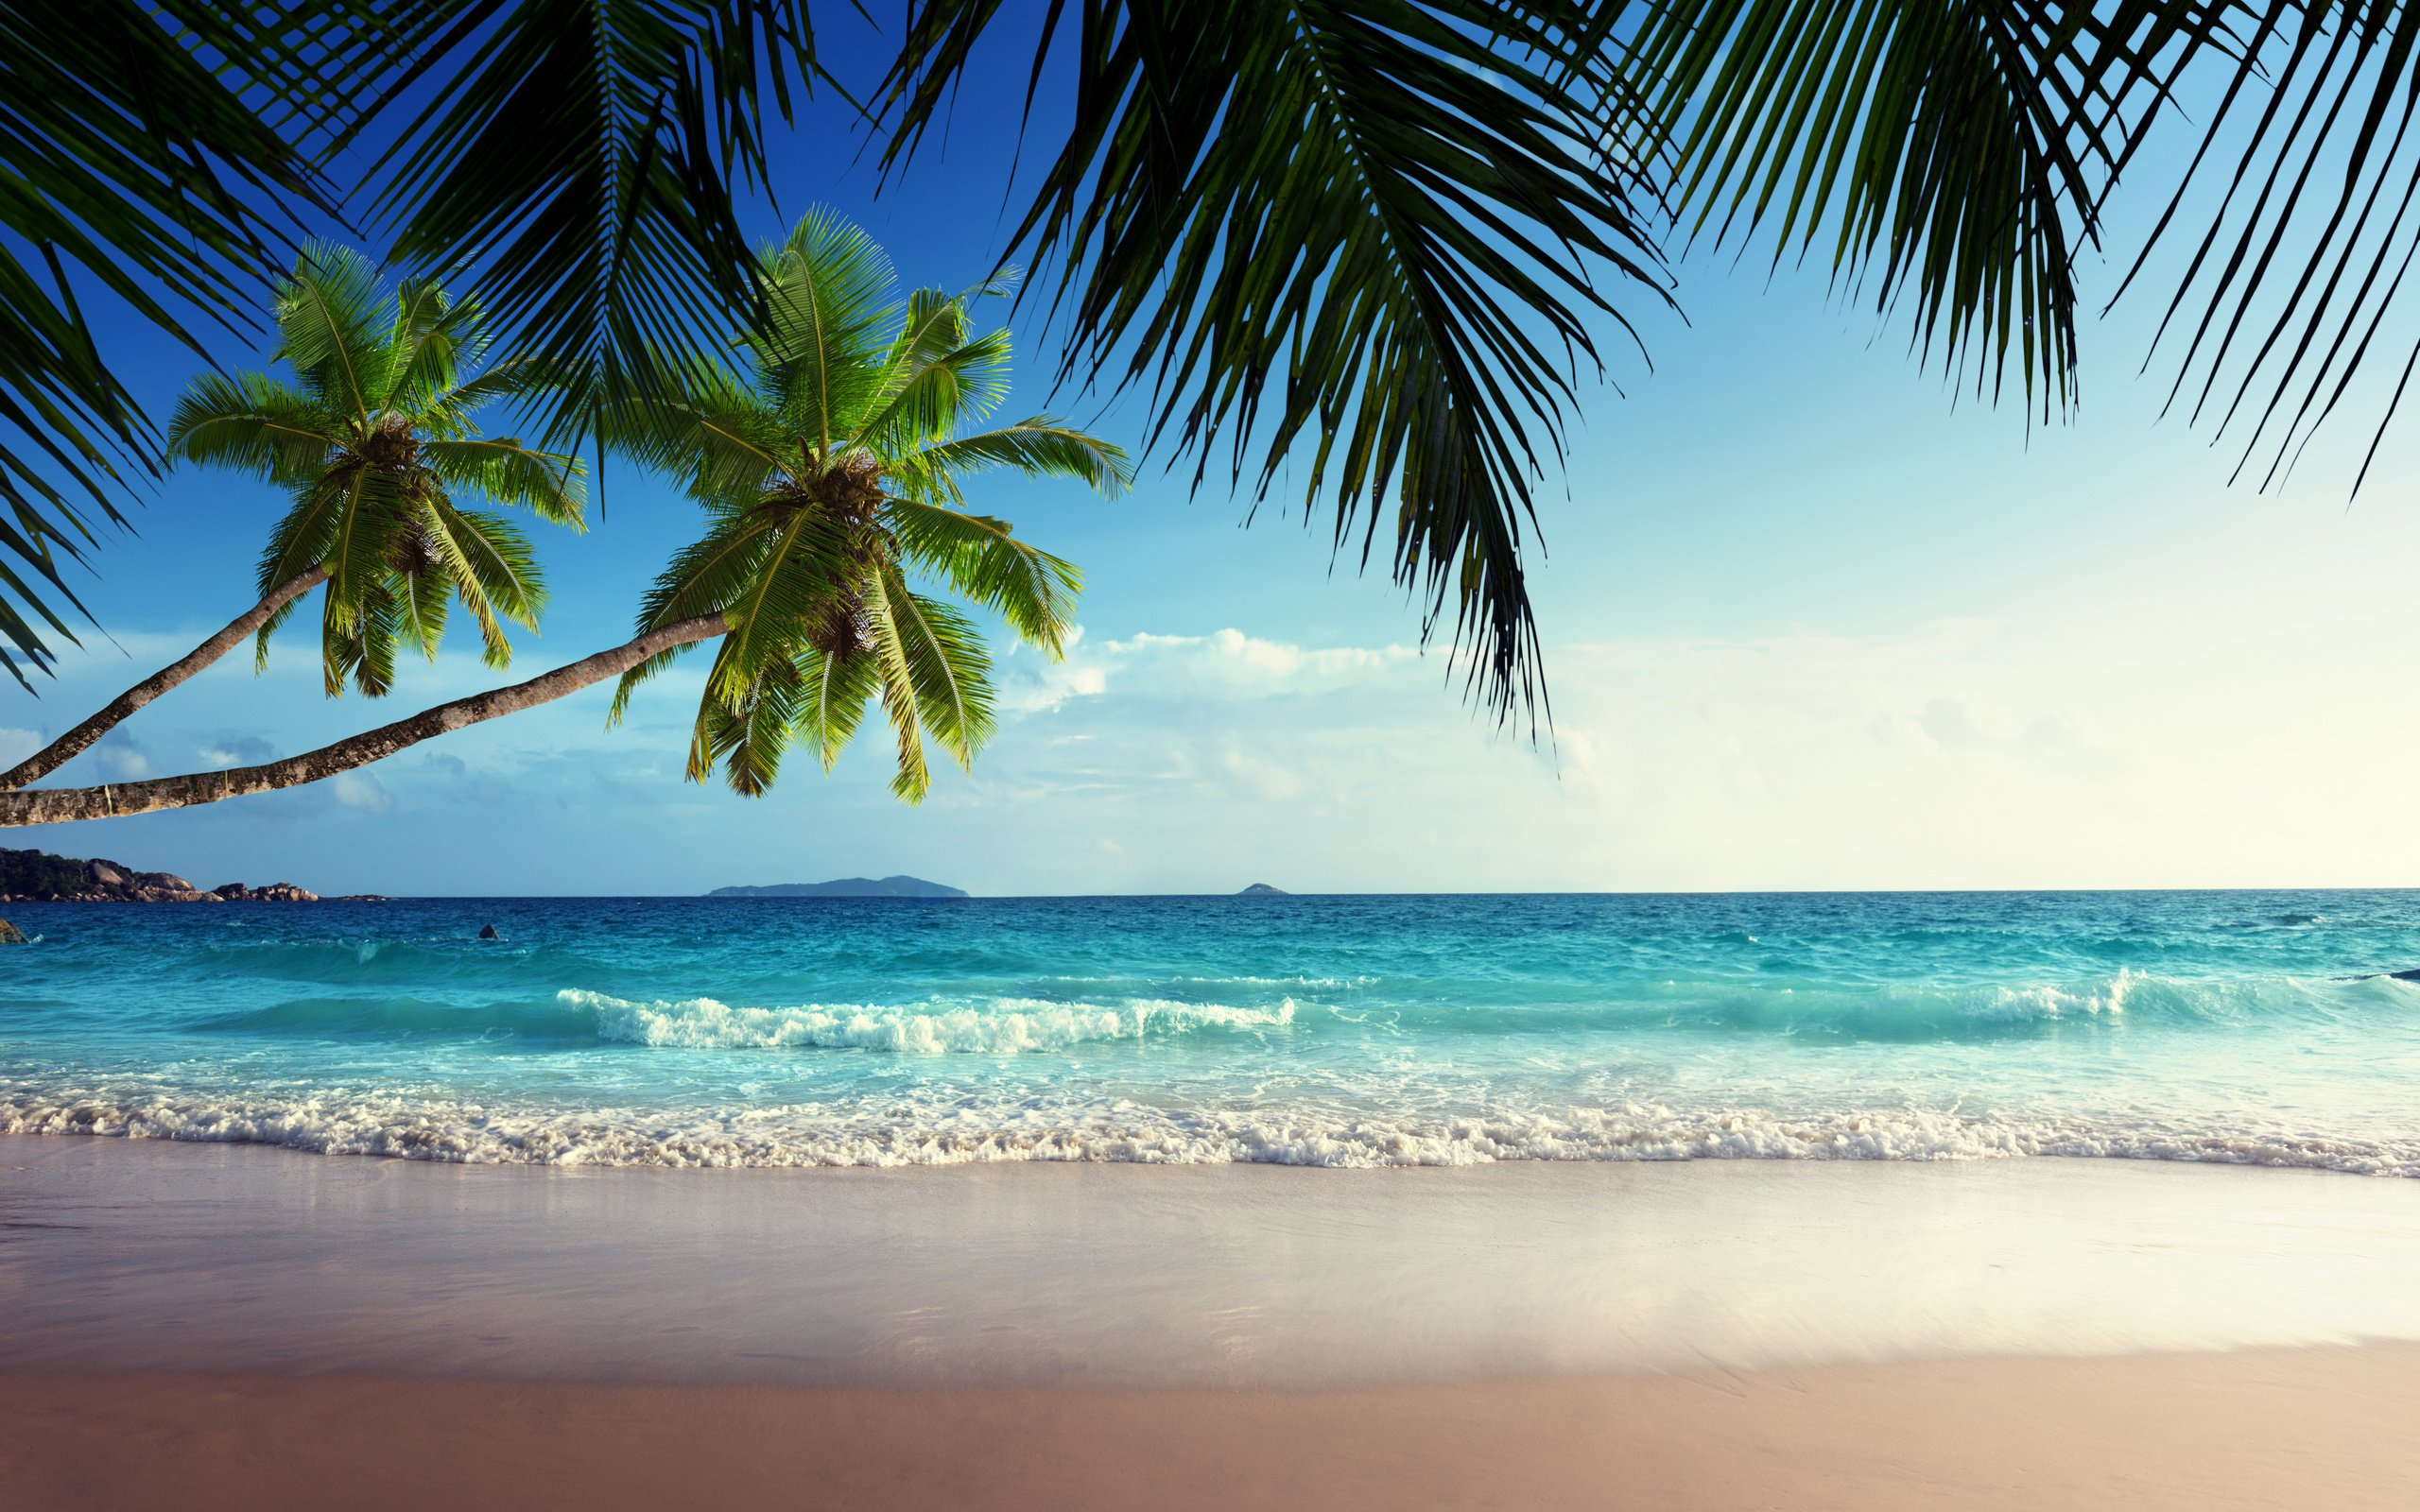 paradise sunshine beach sky tropical blue coast wallpaper background 2560x1600